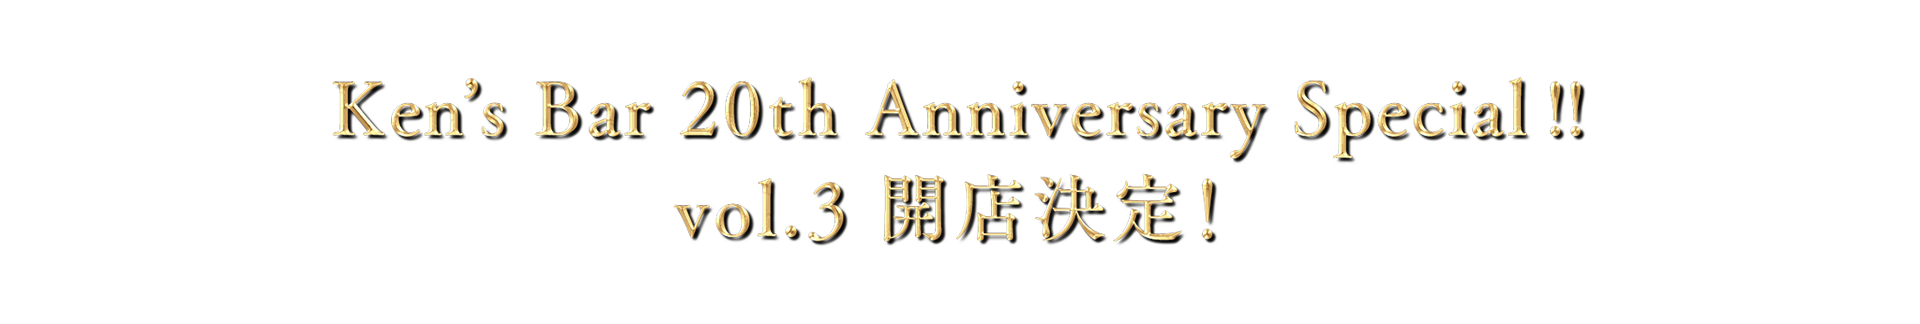 Ken's Bar 20th Anniversary vol.3 開店決定!